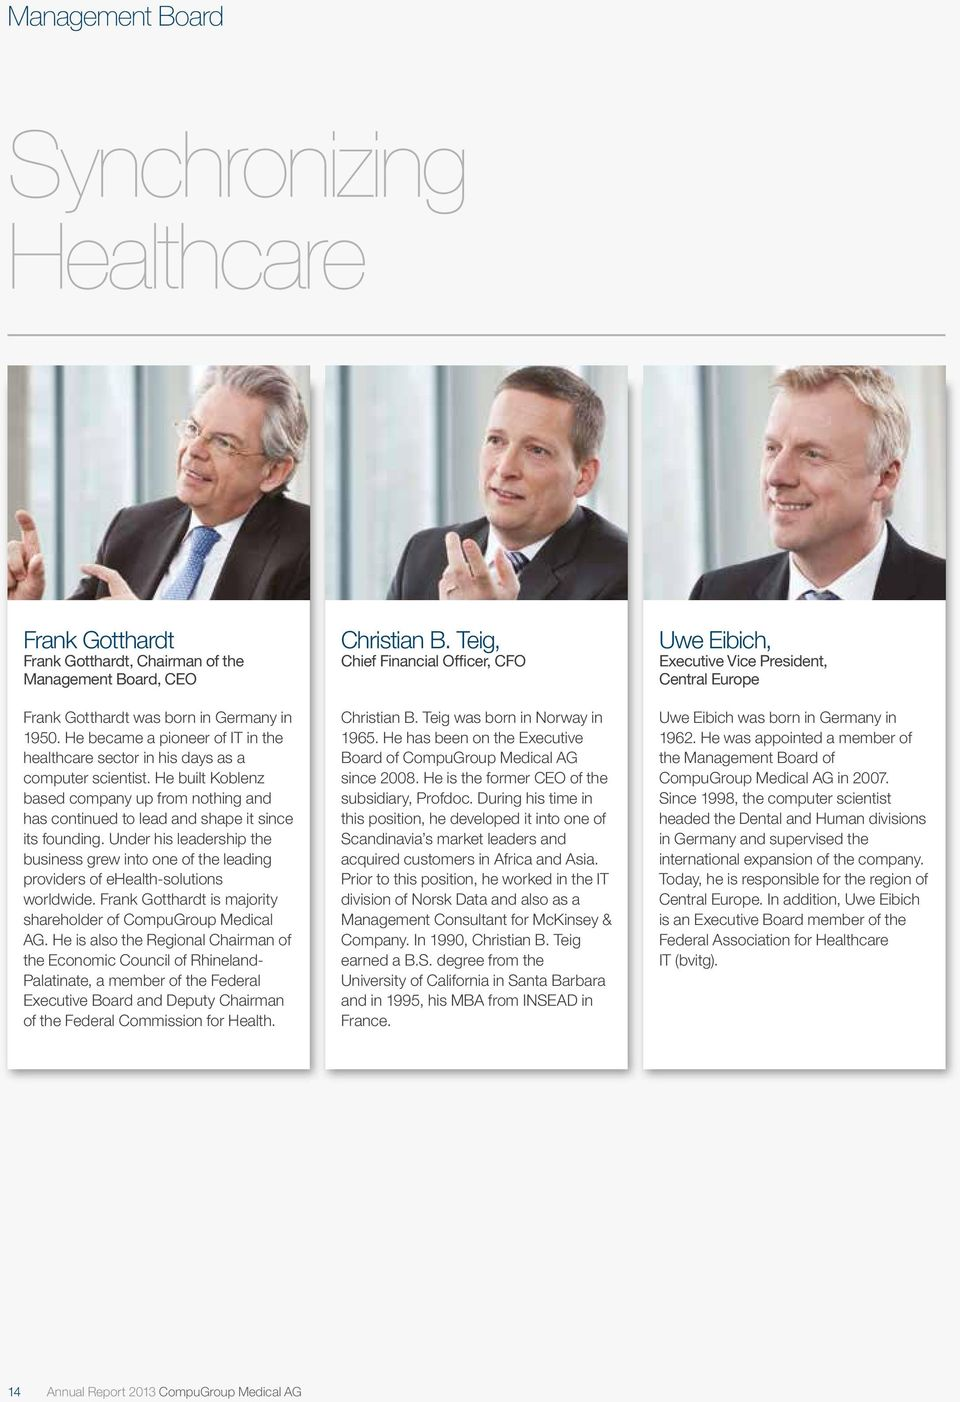 Under his leadership the business grew into one of the leading providers of ehealth-solutions worldwide. Frank Gotthardt is majority shareholder of CompuGroup Medical AG.